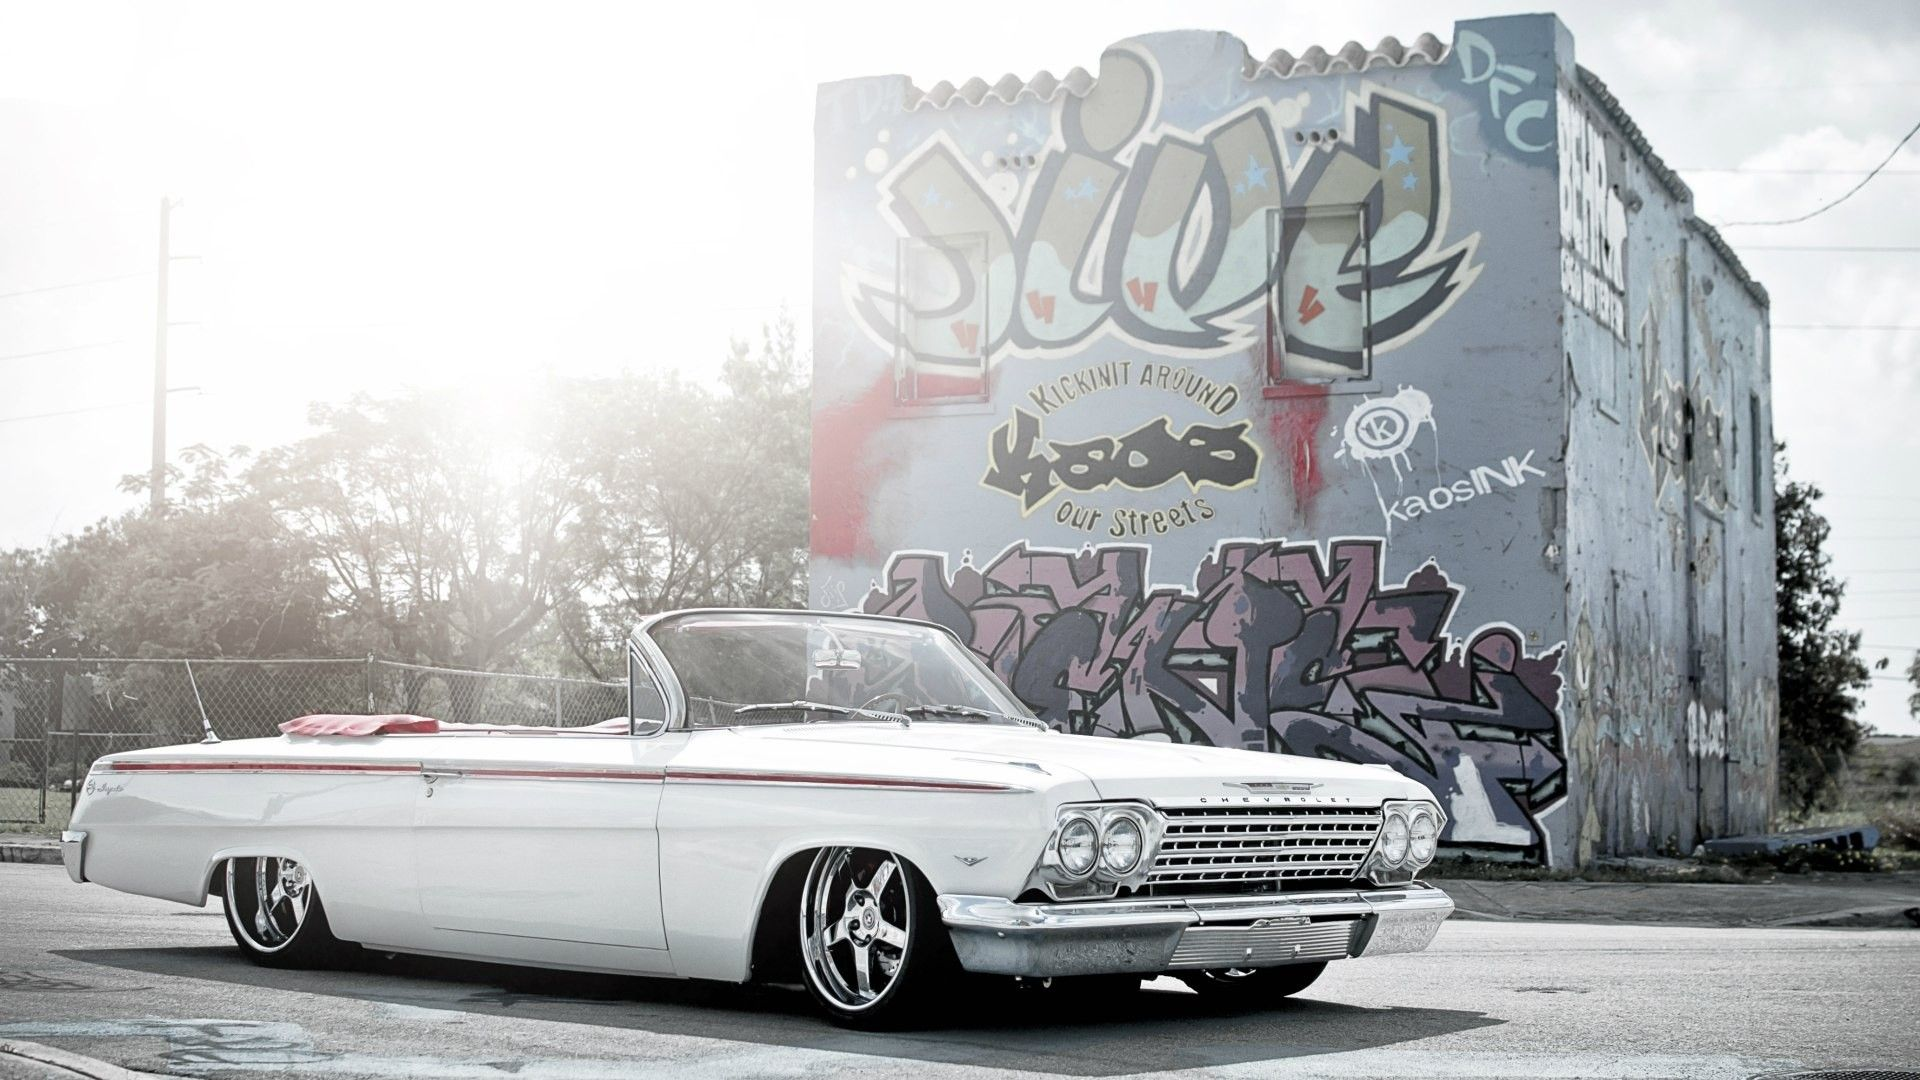 Lowrider impala 1080p hd wallpaper classic car cars pinterest lowrider impala 1080p hd wallpaper classic car voltagebd Image collections